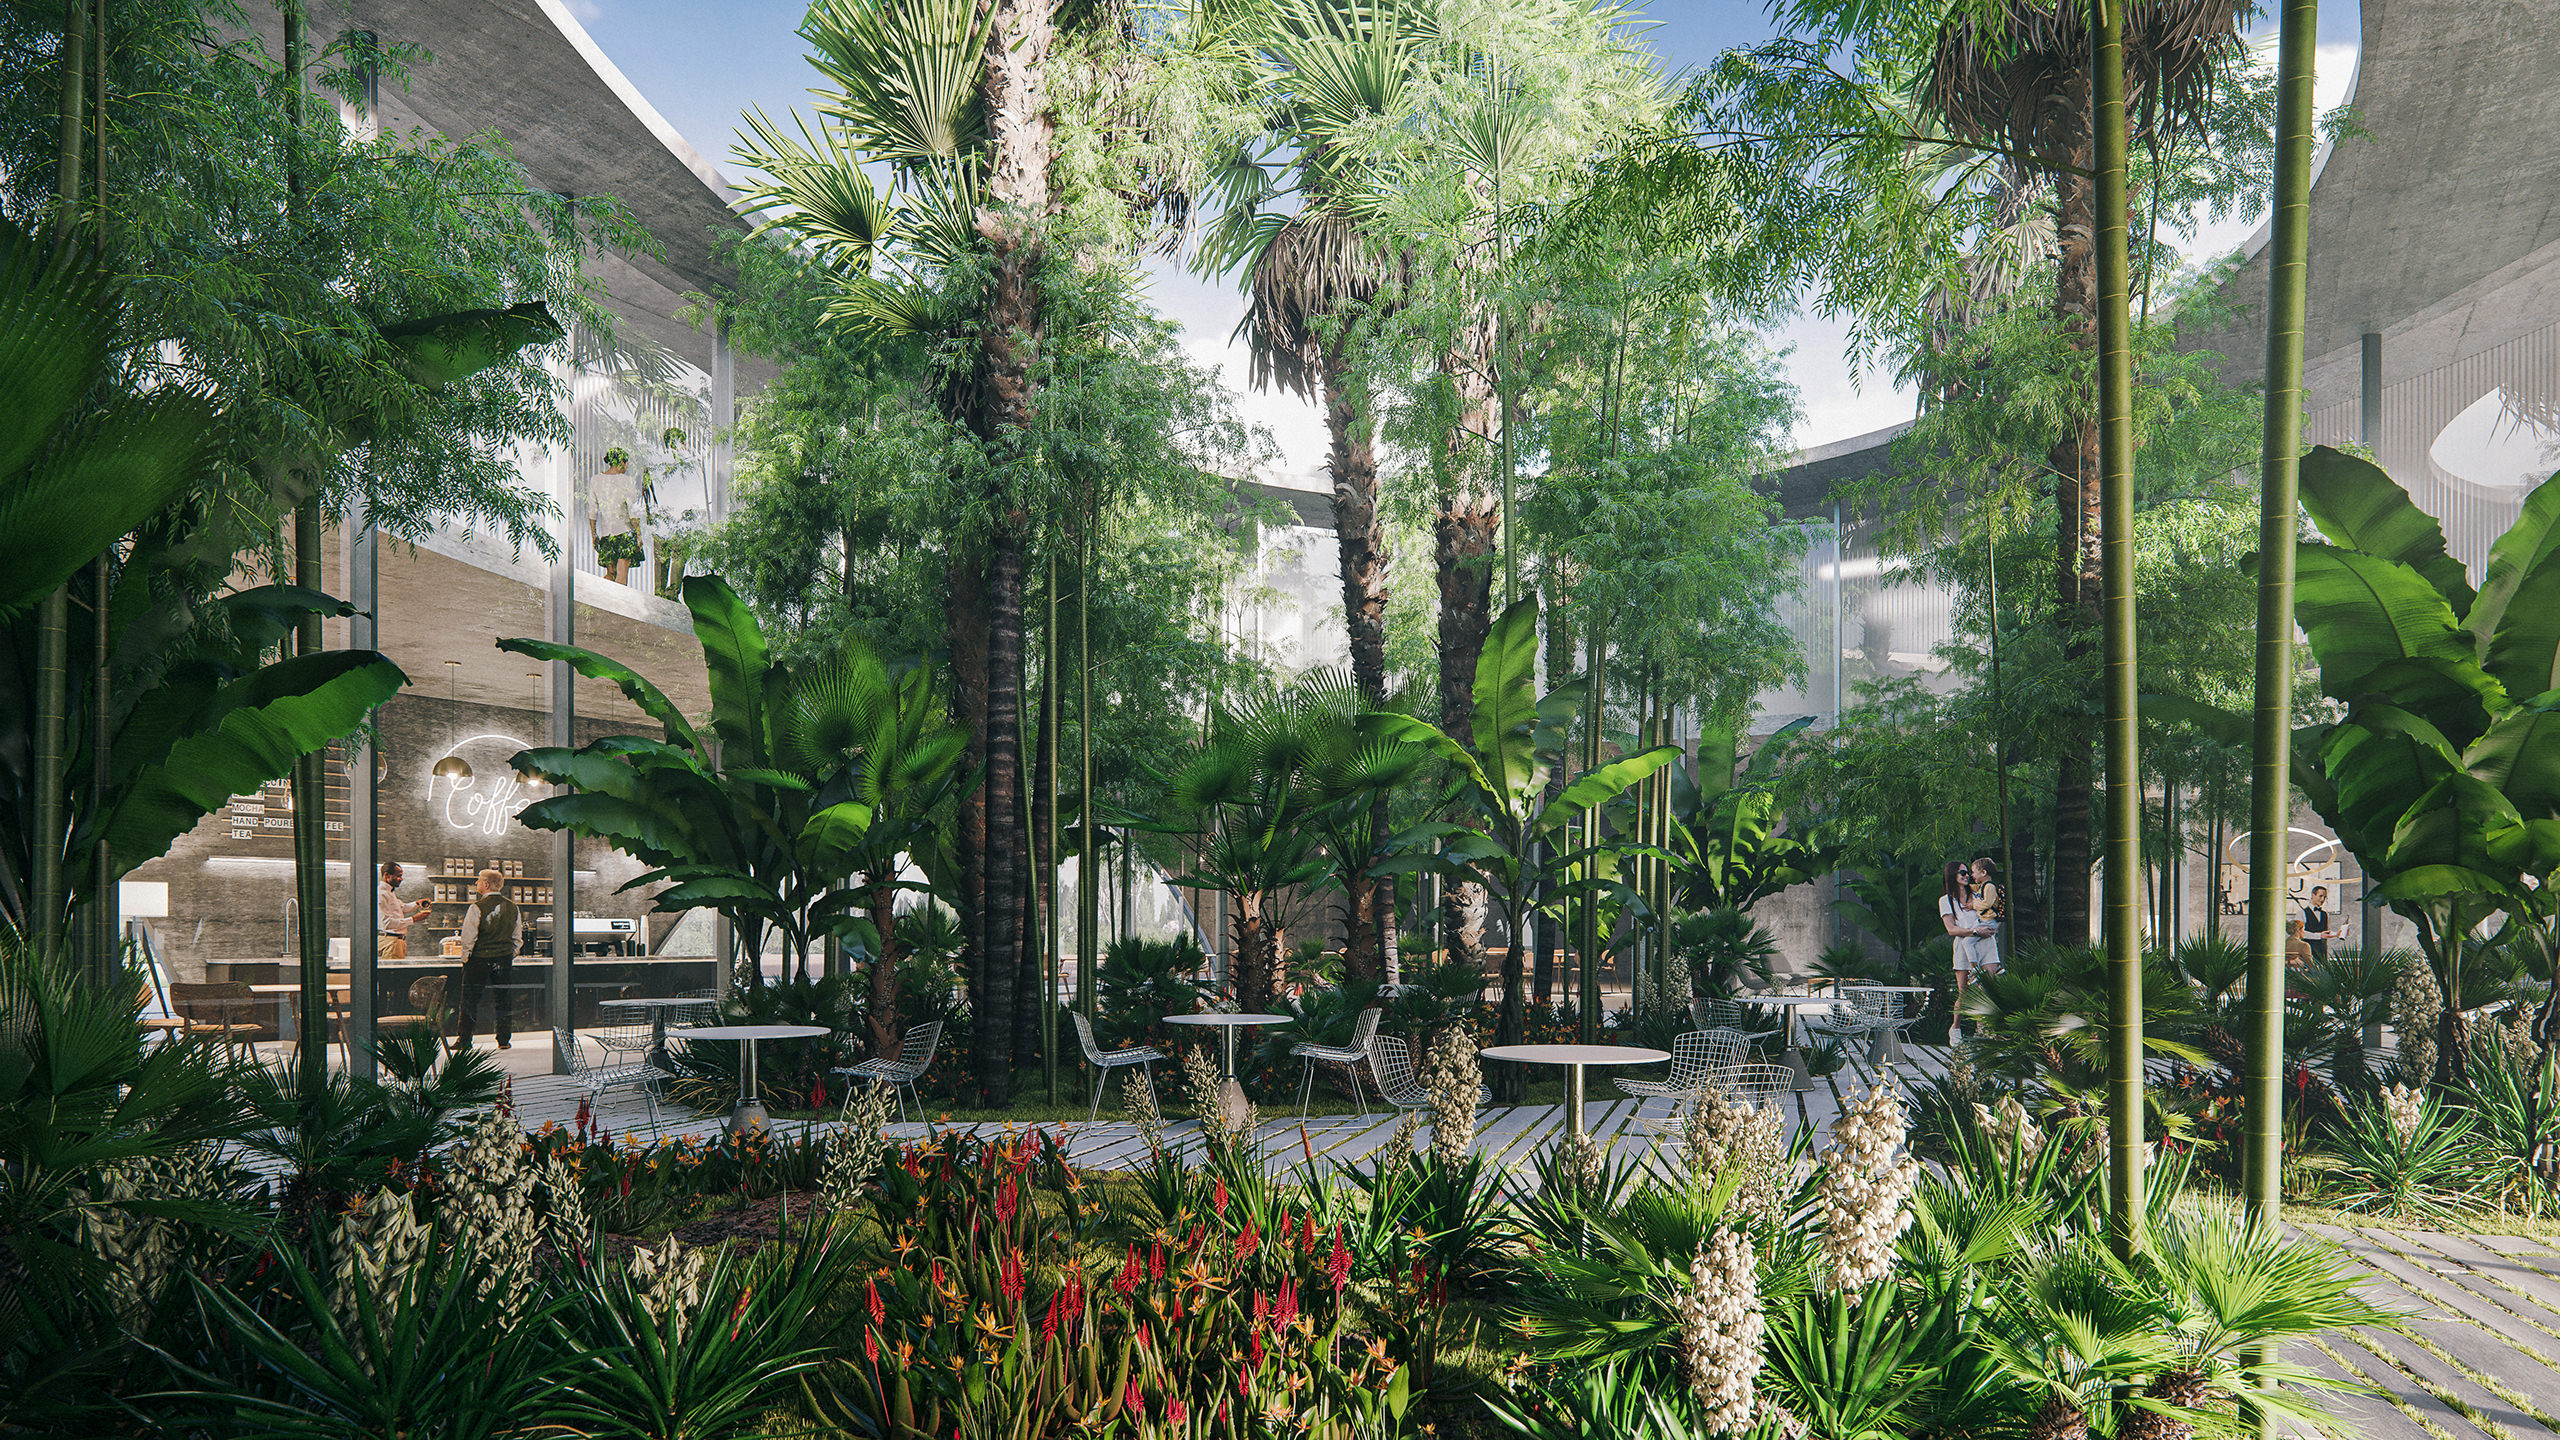 Architectural 3D visualization of a business center patio with several tropical garden islands surrounded by cafes and offices rendered under the open sky in the light of day